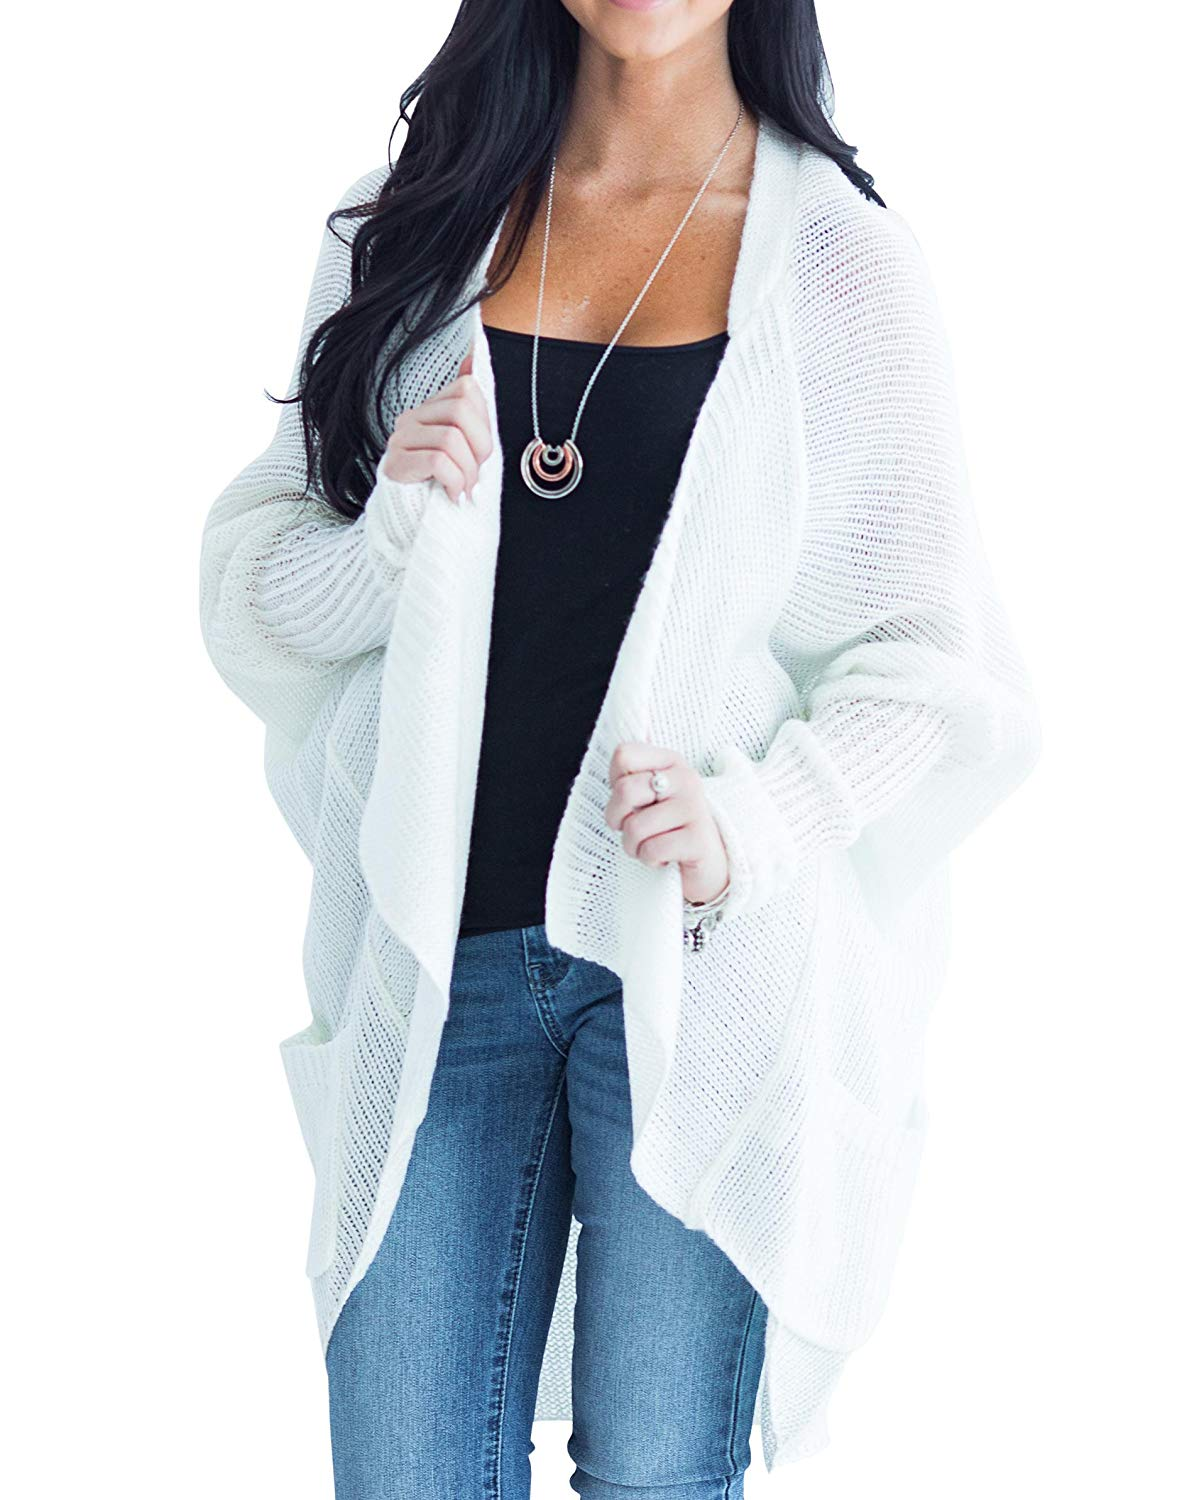 Ofenbuy Womens Cardigans Open Front Long Sleeve Lightweight Loose Knit Cardigan Sweaters